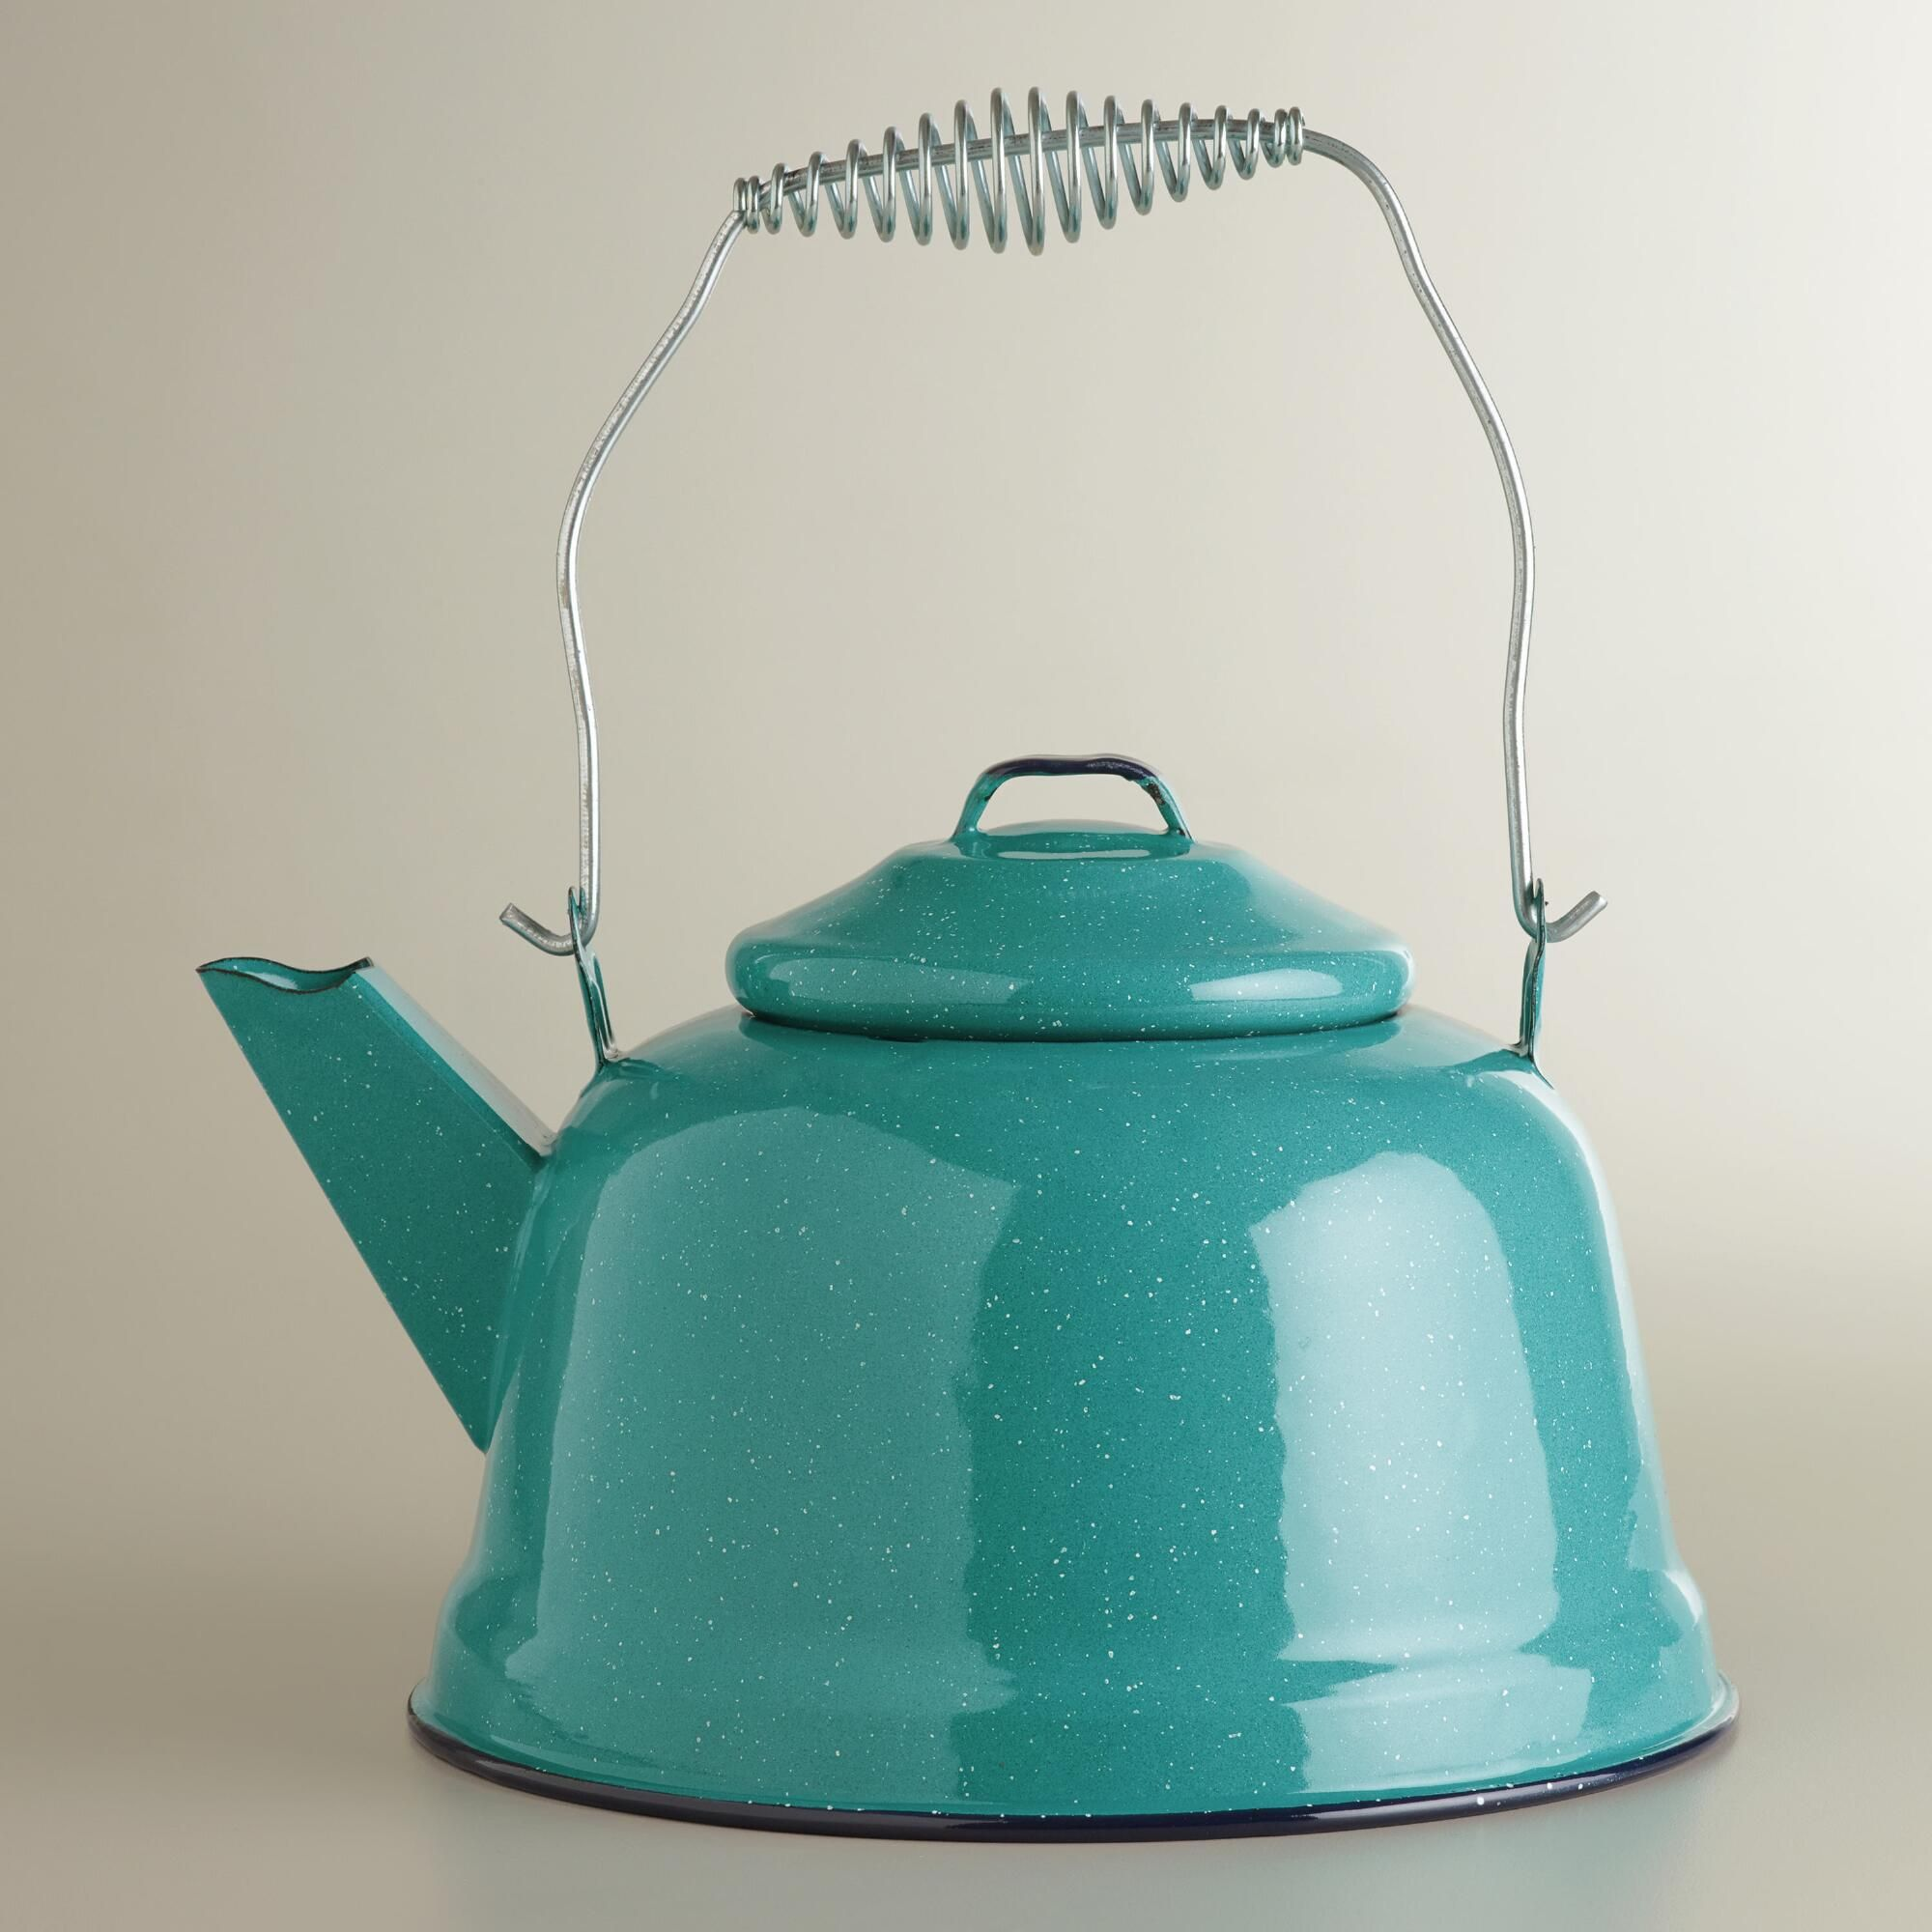 crafted of high quality steel with a heavy enamel glaze our kiln